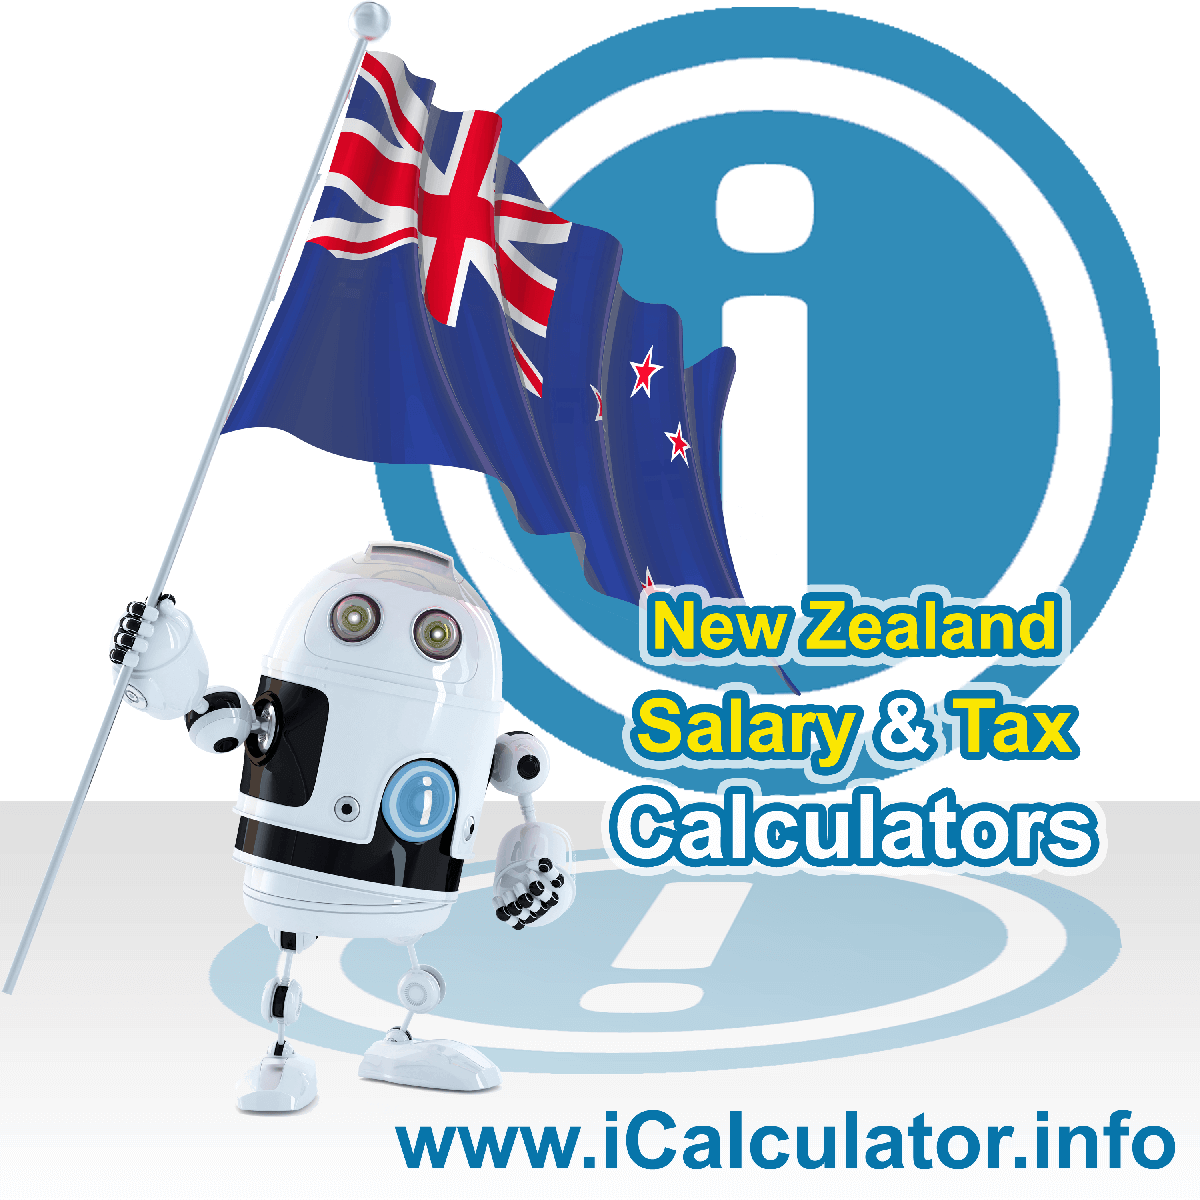 New Zealand Wage Calculator. This image shows the New Zealand flag and information relating to the tax formula for the New Zealand Tax Calculator